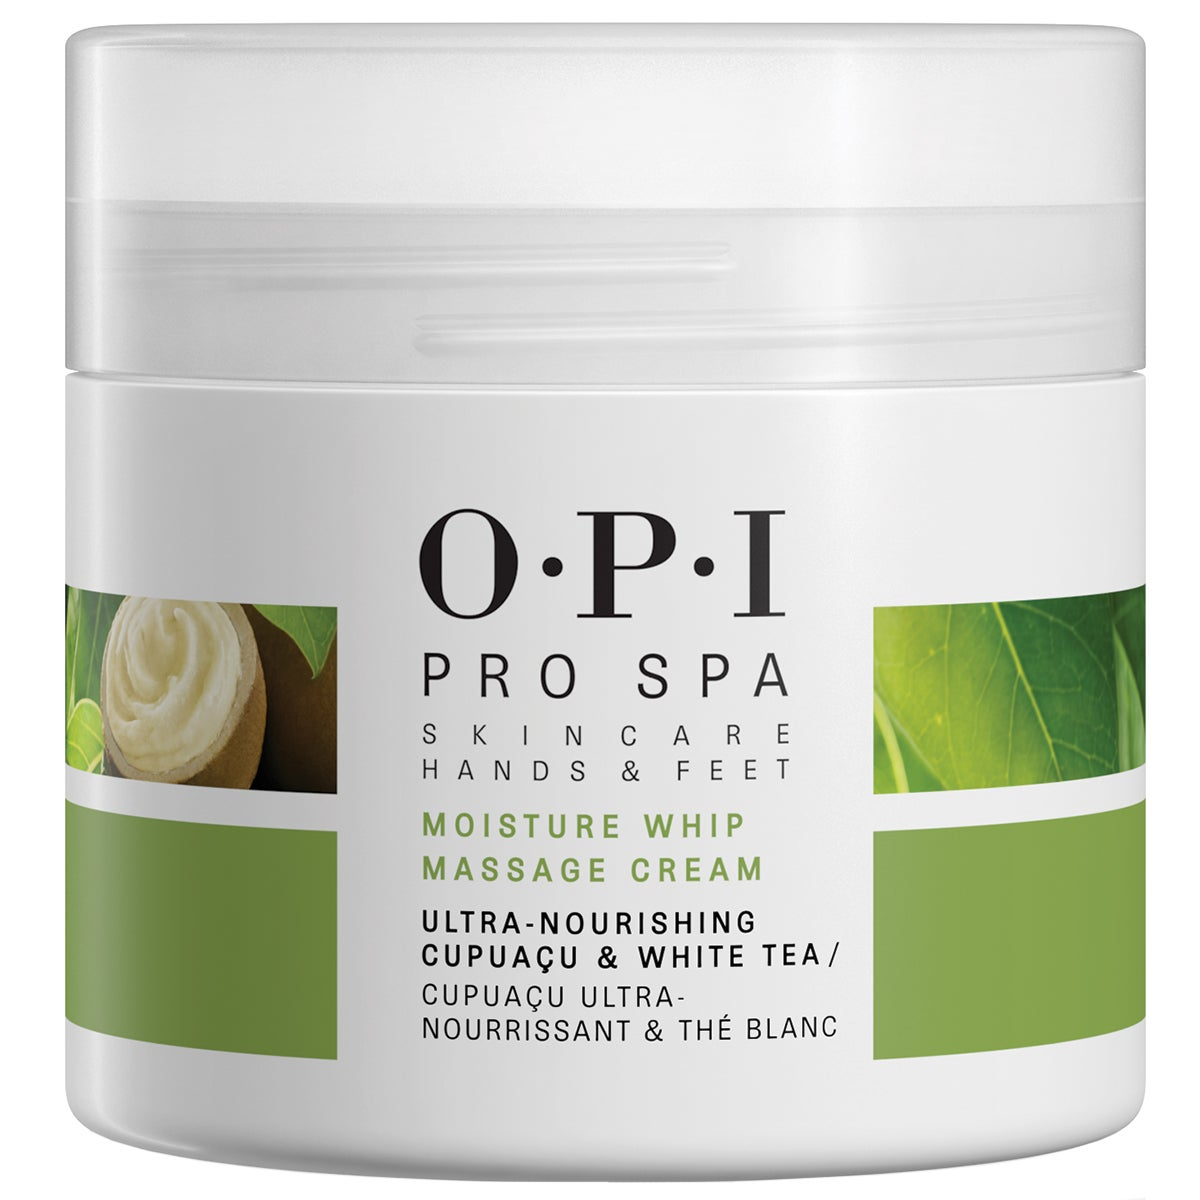 OPI Pro Spa Moisture Whip Massage Creme